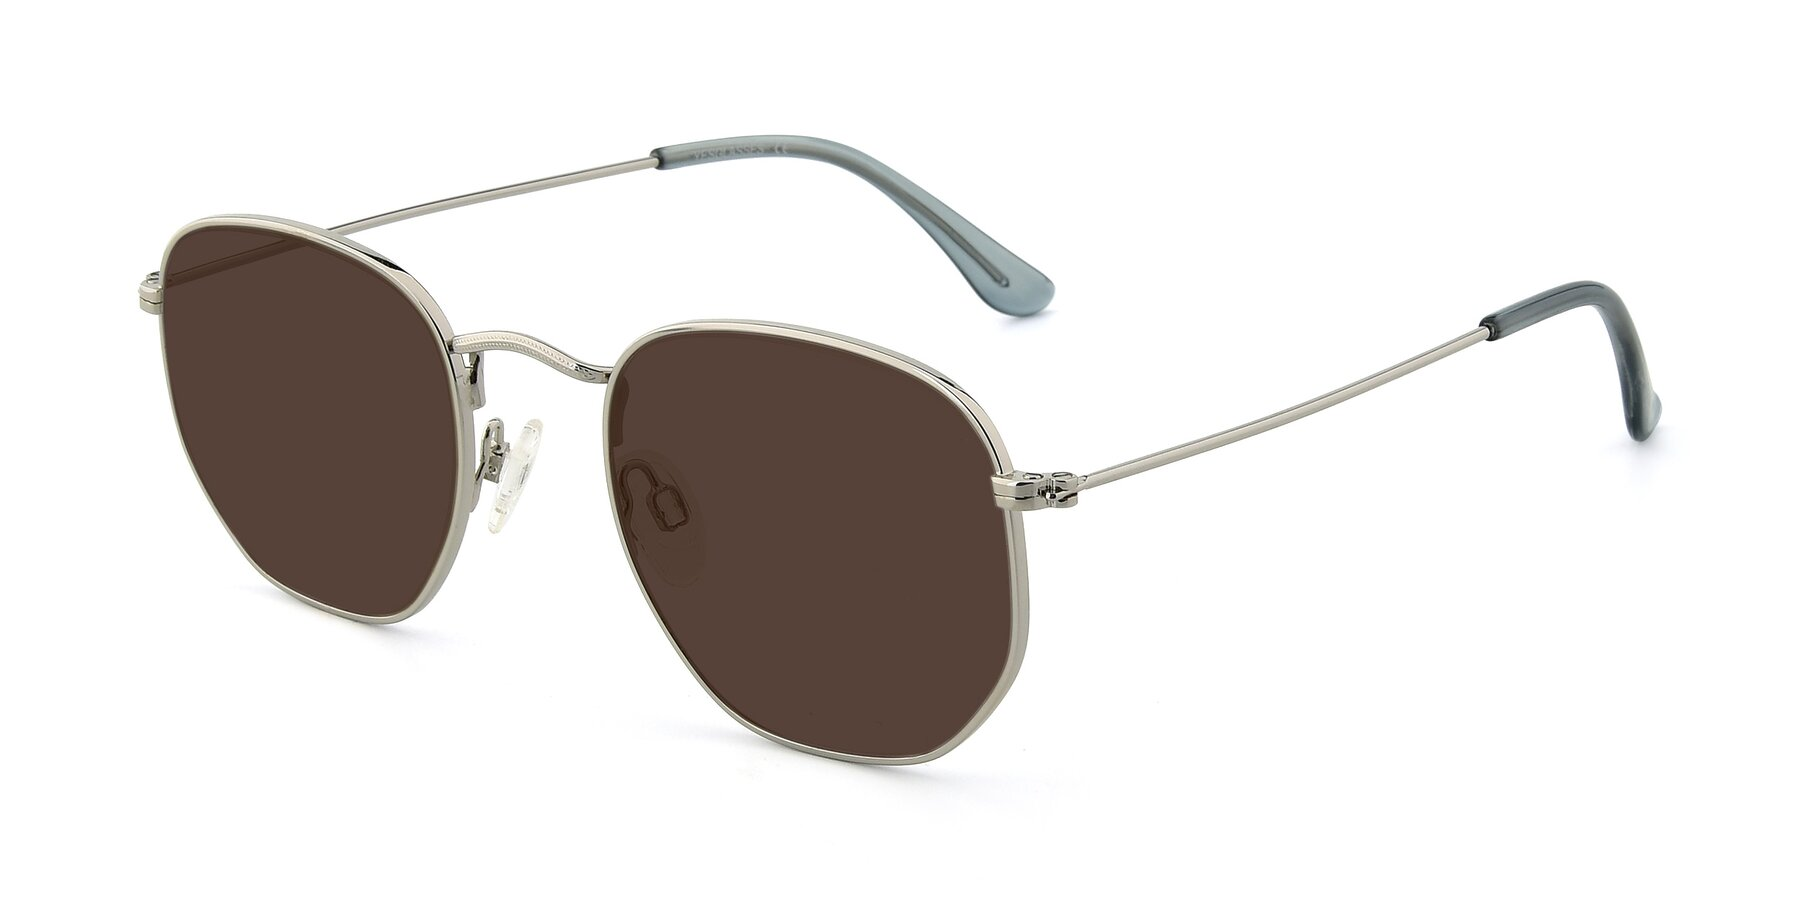 Angle of SSR1944 in Silver with Brown Tinted Lenses